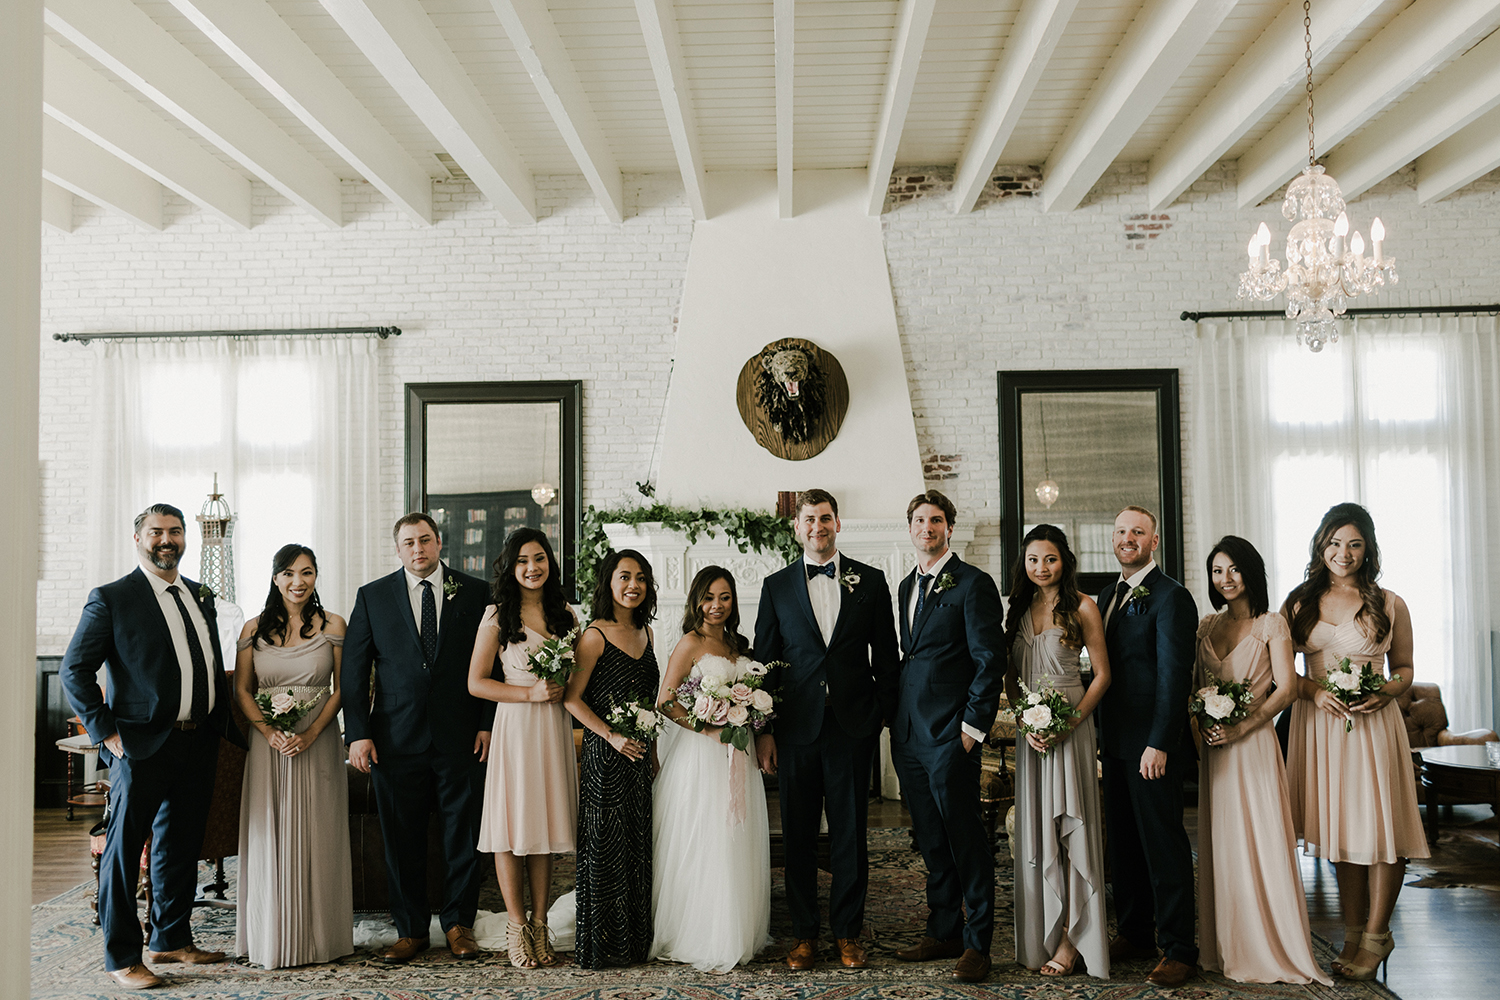 Michelle + Patrick Moody Romantic Wedding // Morgan Hydinger Photography // Lucky Day Events Co. // Ebell Long Beach